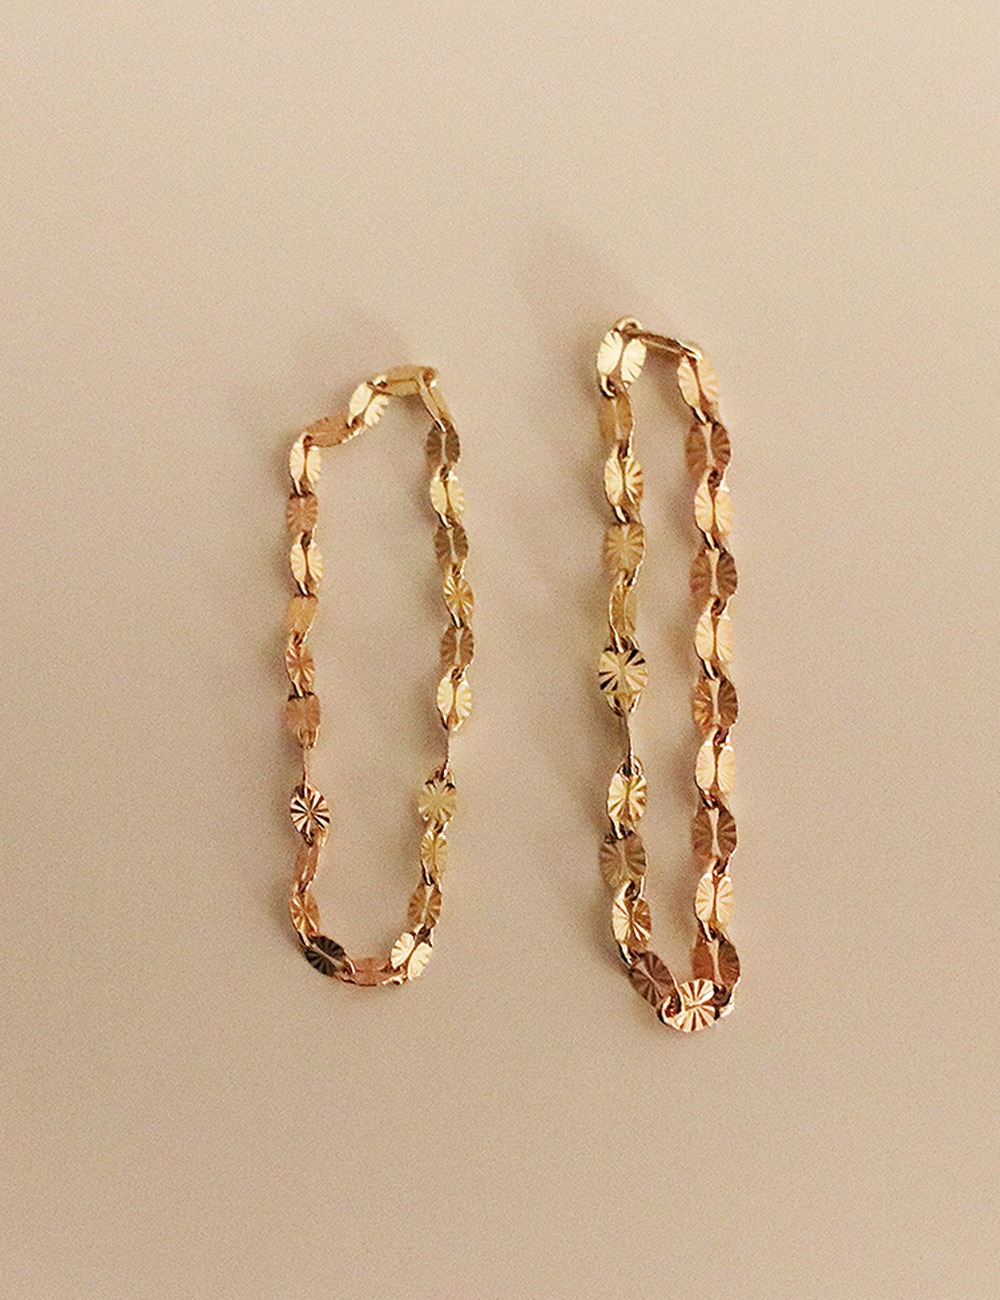 (14k gold) Cutting chain ring